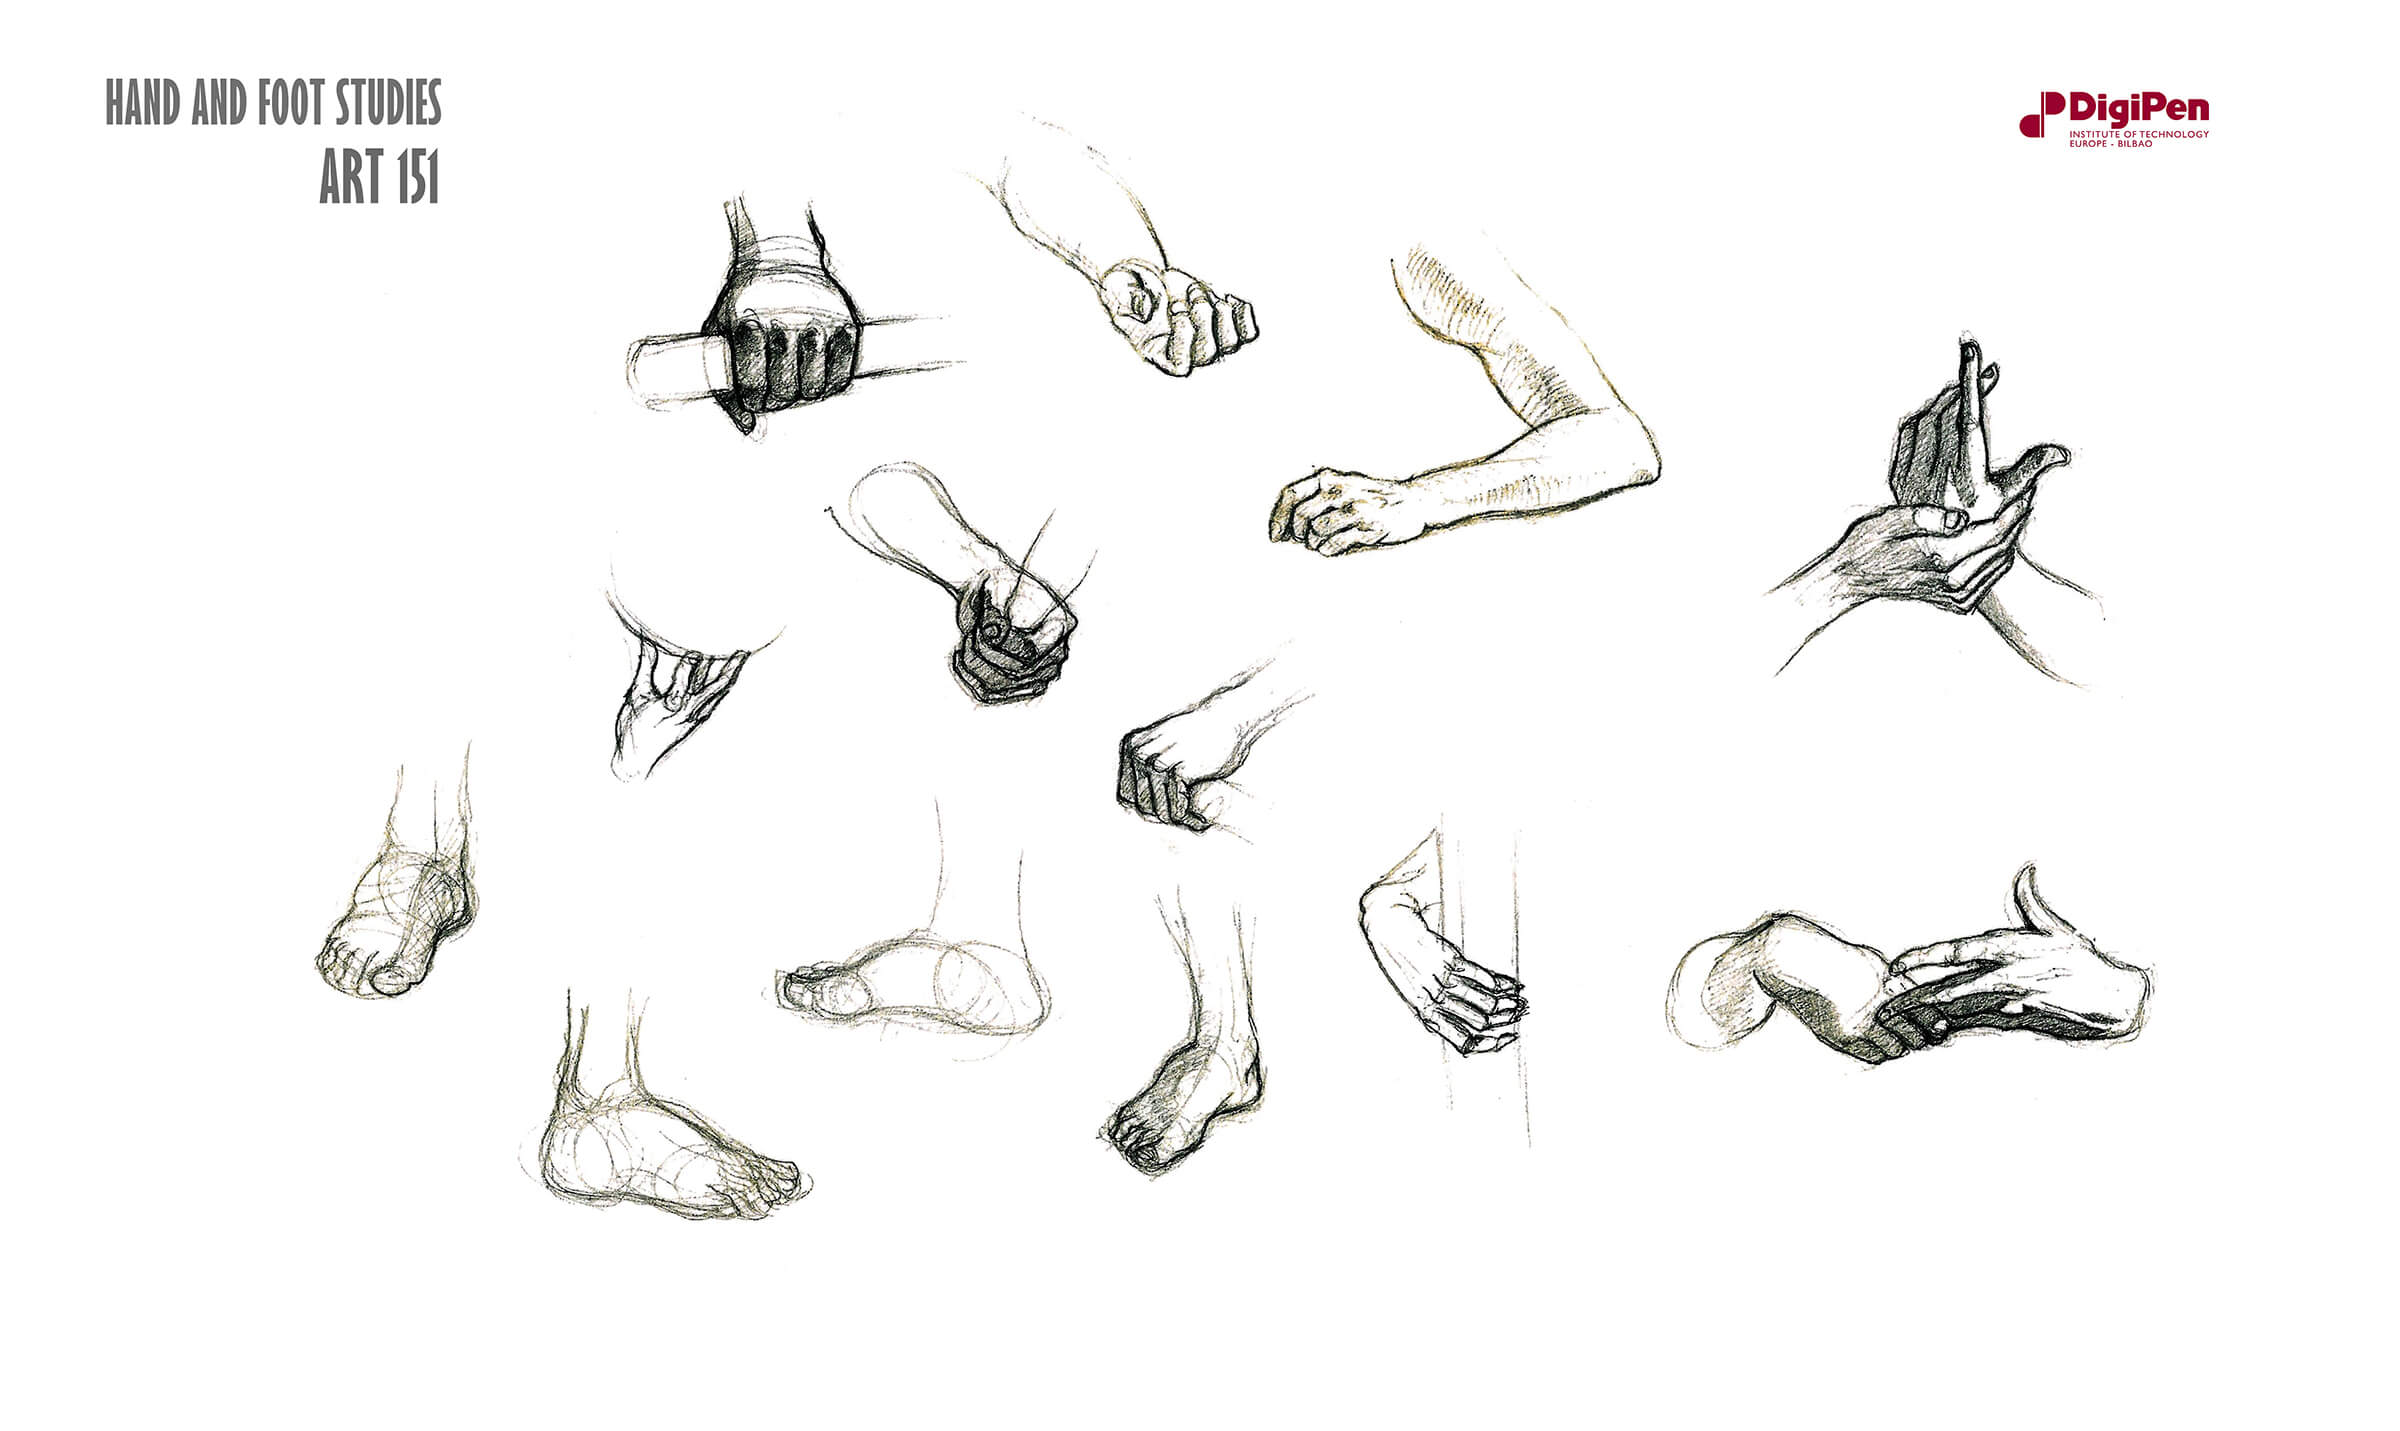 Black-and-white sketches of hands, arms, and feet in different poses, grasping and extending.